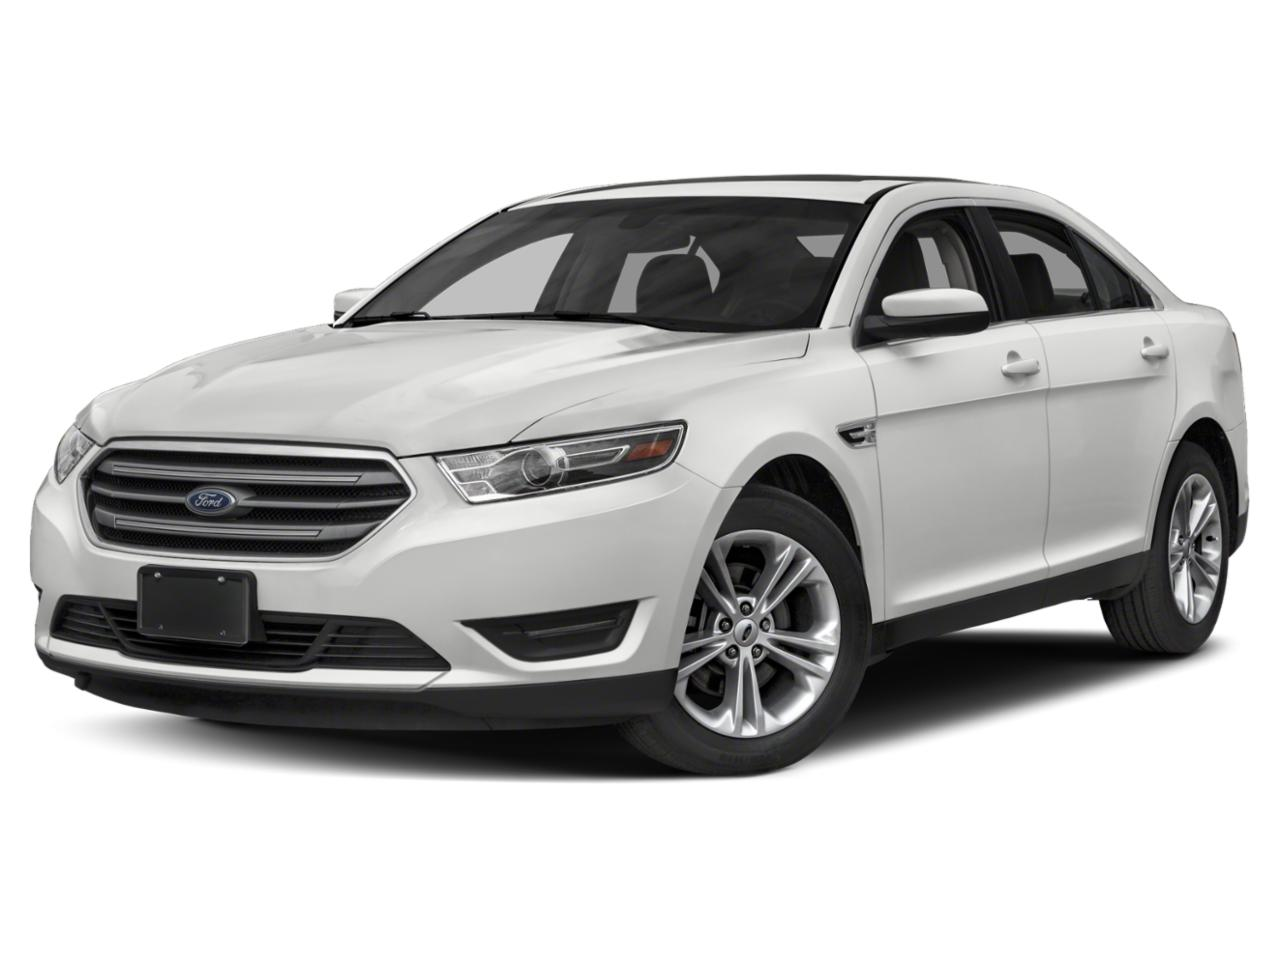 2019 Ford Taurus Vehicle Photo in Corpus Christi, TX 78410-4506